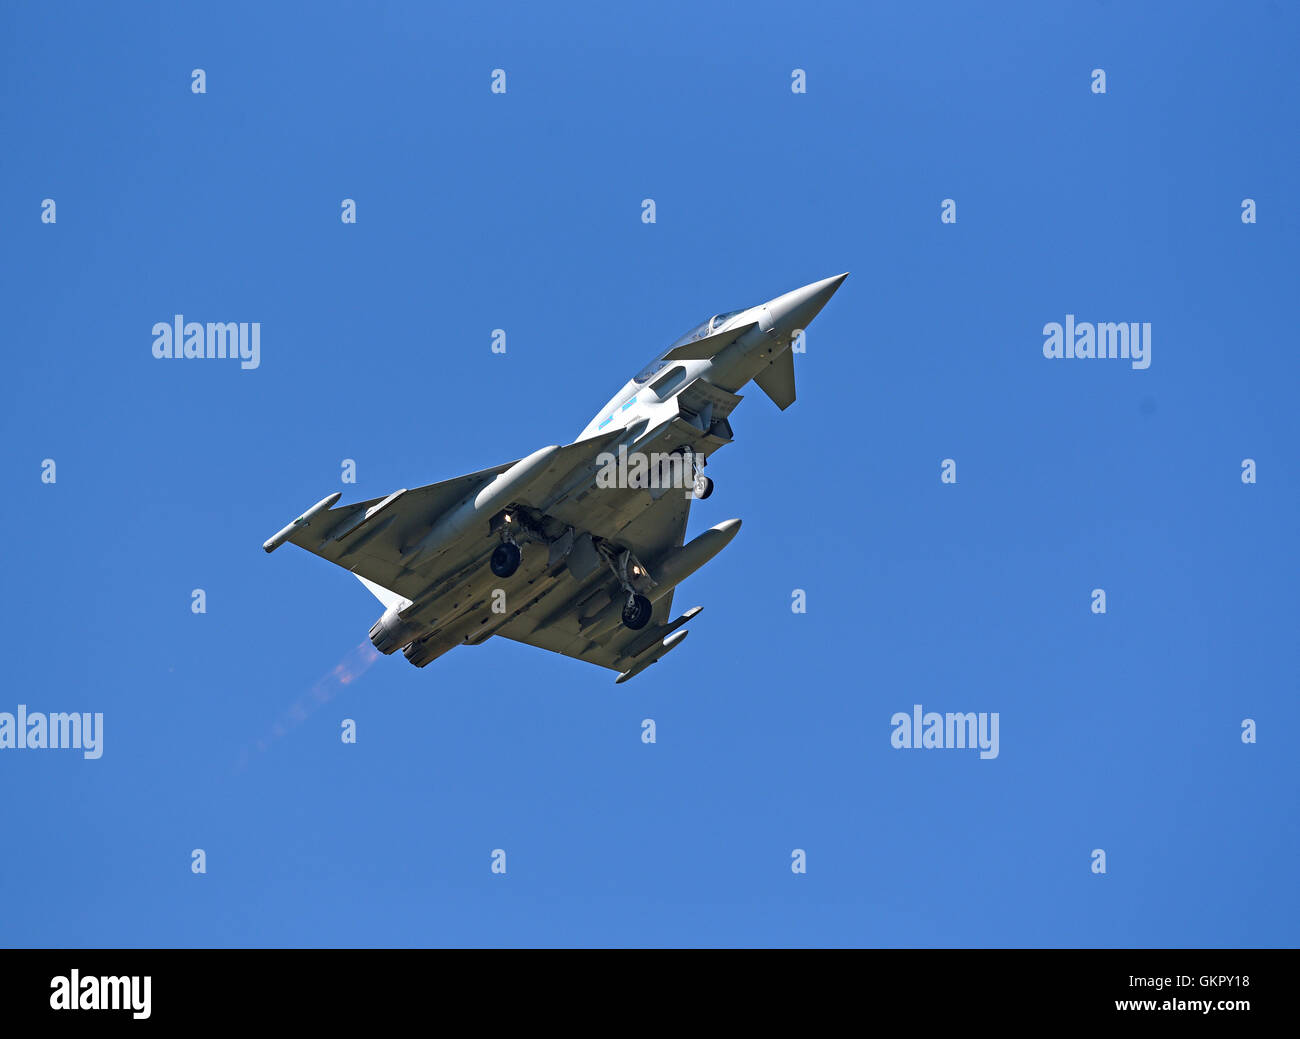 Eurofighter Typhoon FGR4Tail Fin 'FZ' on full reheat at take off. SCO 11,256. - Stock Image